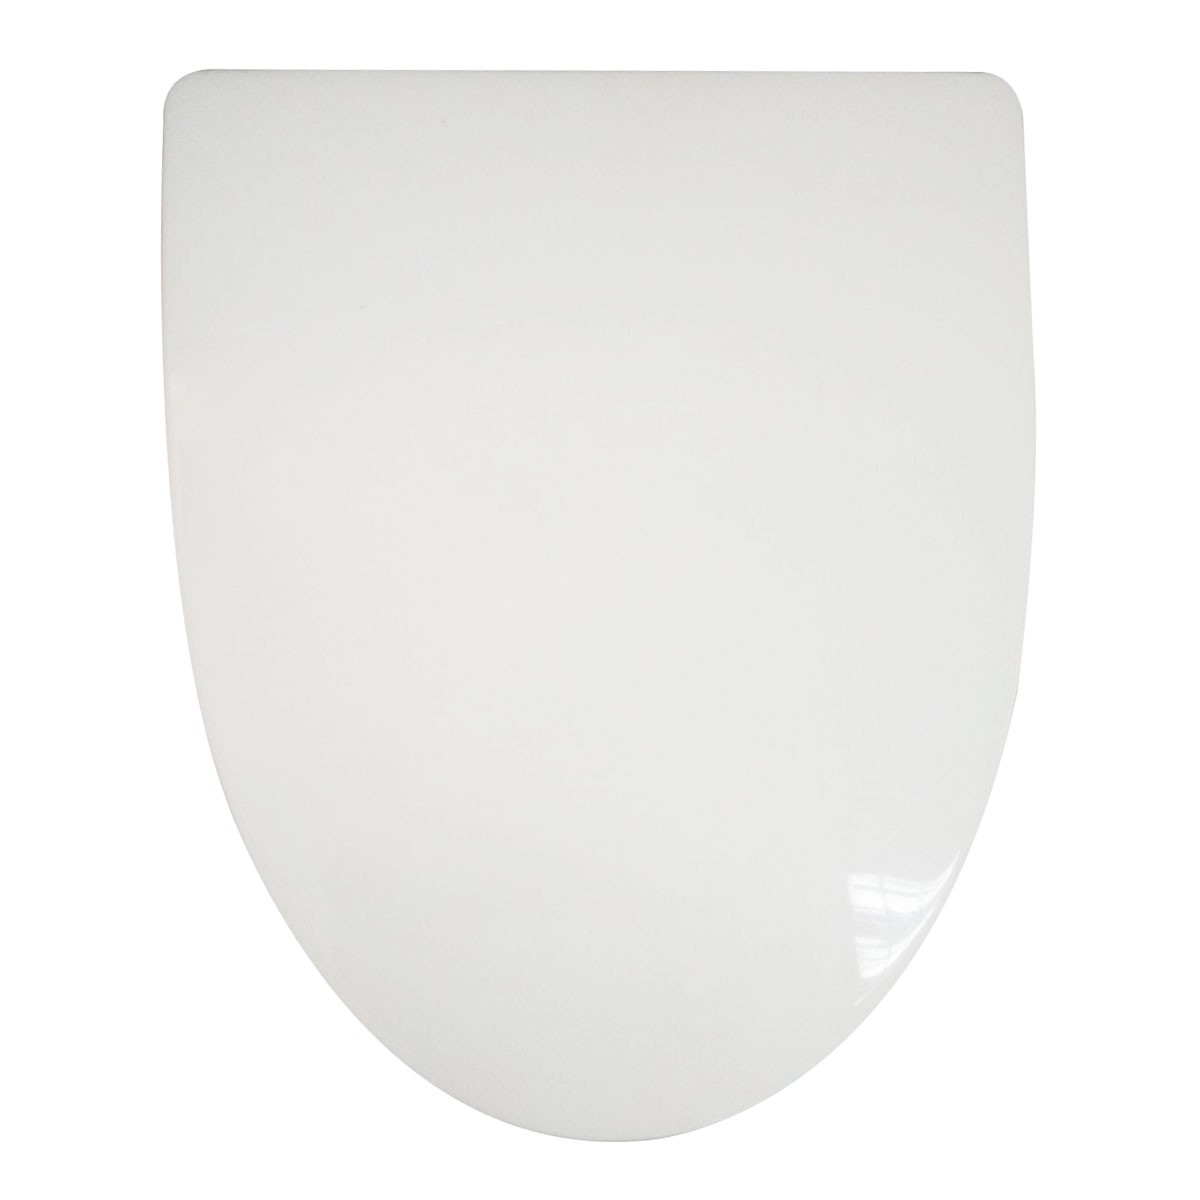 PP White Front Round Soft Close Toilet Seat with Cover (DK-CL-022)